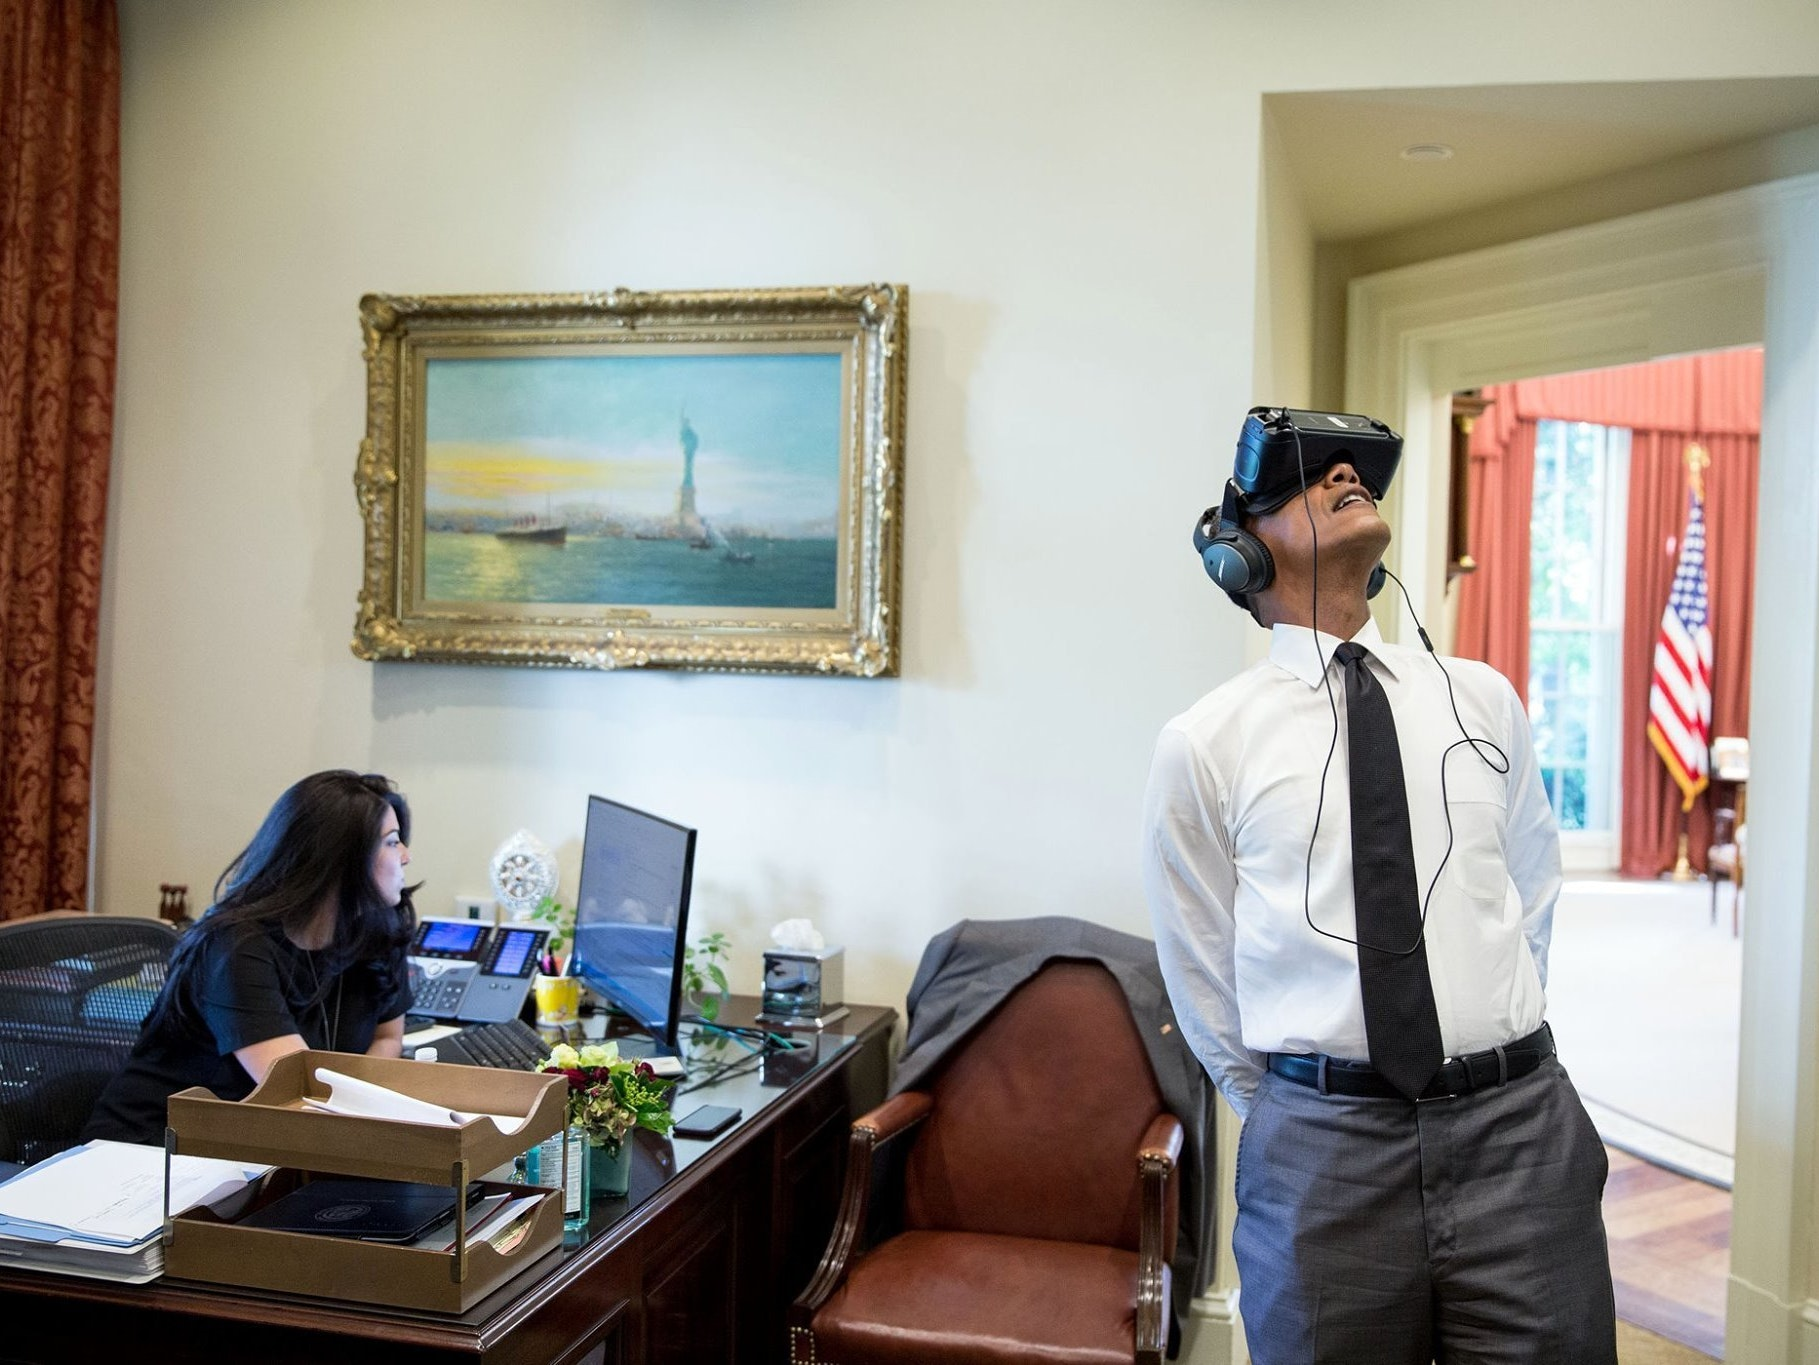 VR Photo Shows Obama Is the Internet's Favorite Dad